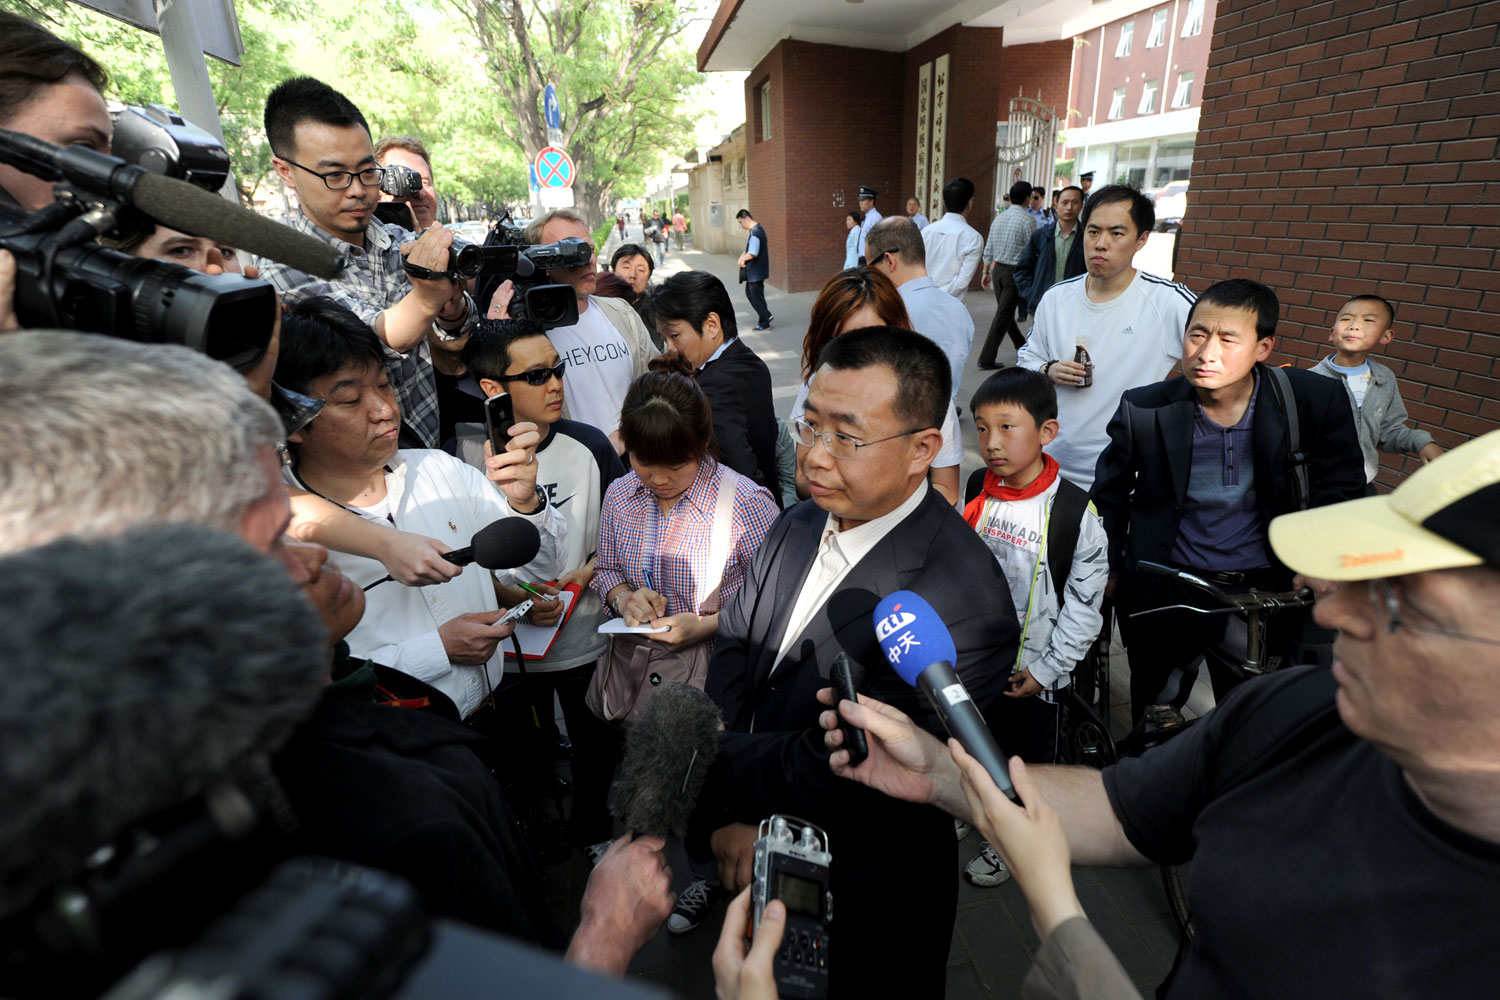 Journalists interview Chinese rights lawyer Jiang Tianyong at a gate of the Chaoyang hospital in Beijing in Beijing on May 2, 2012.